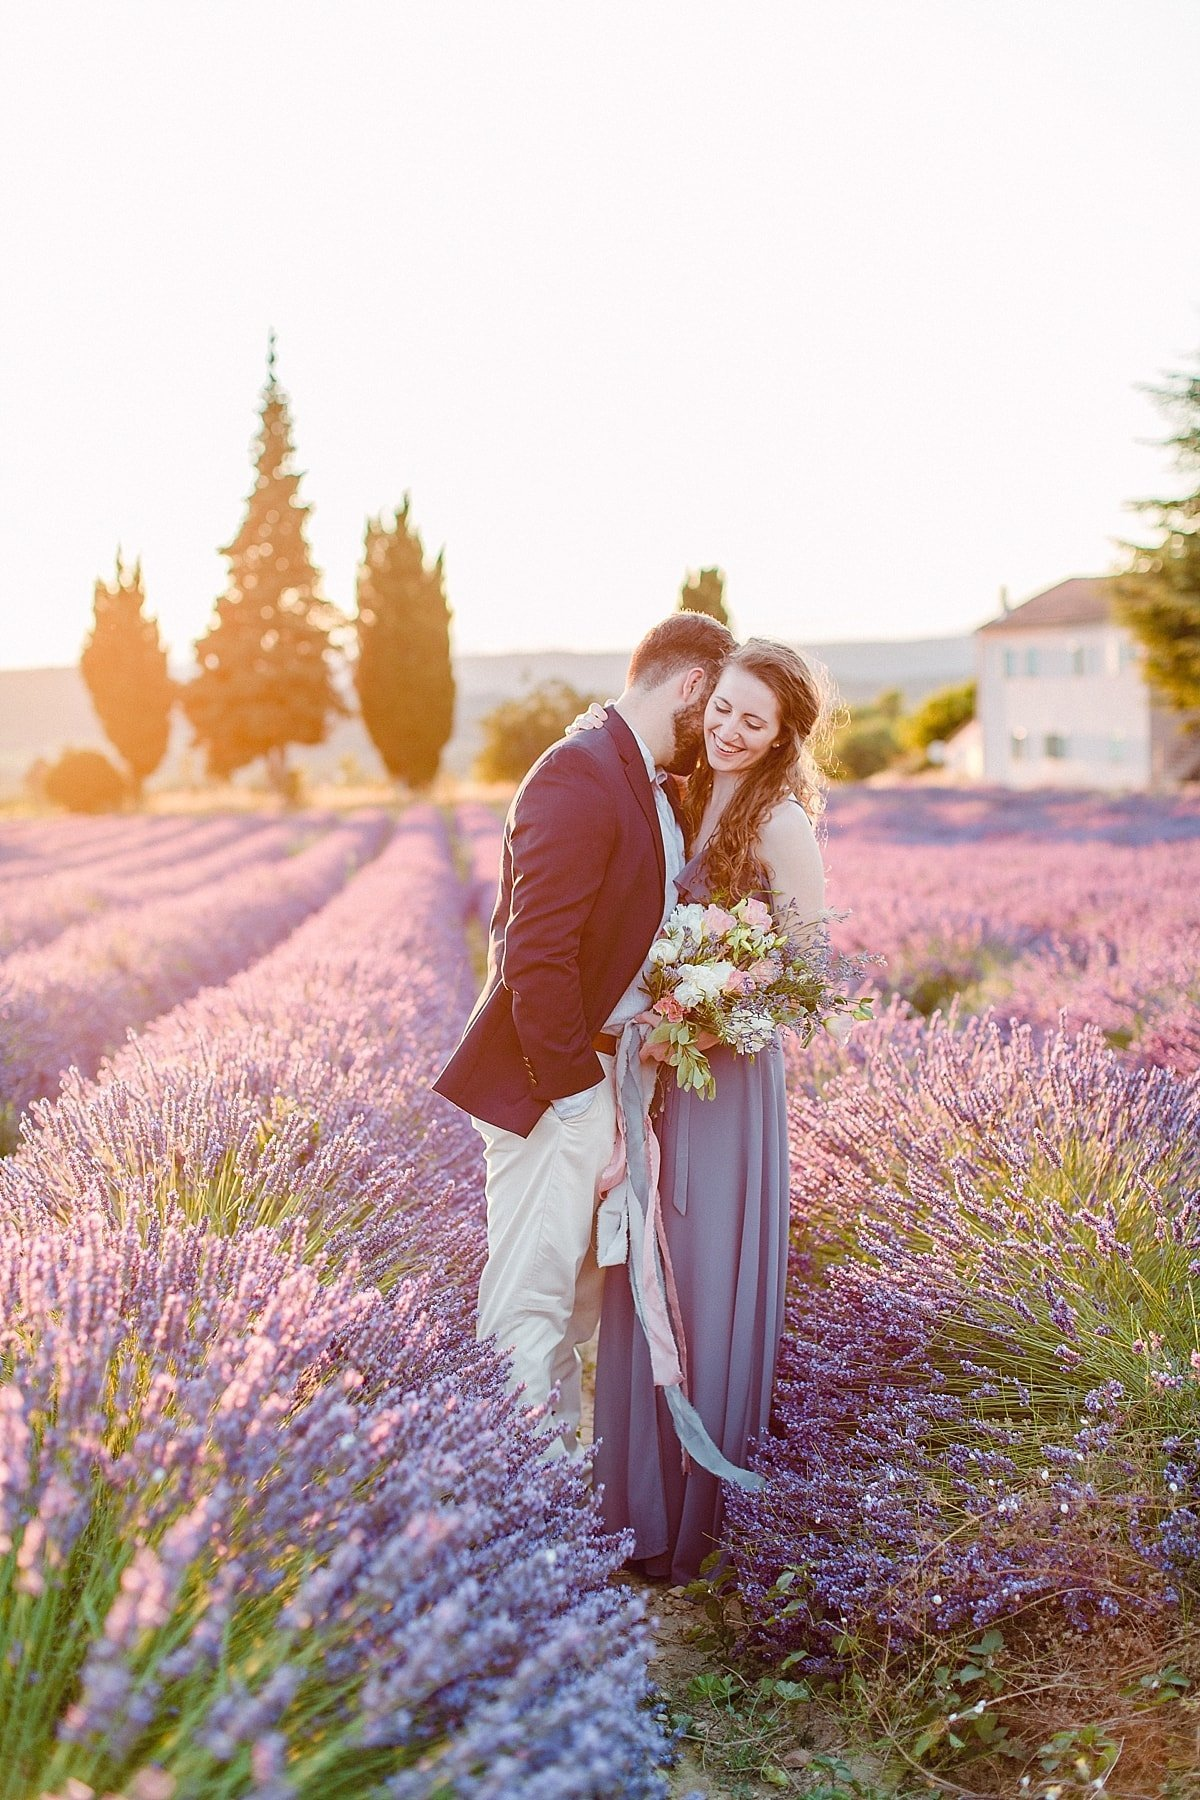 provence-france-lavender-anniversary-session-alicia-yarrish-photography-17